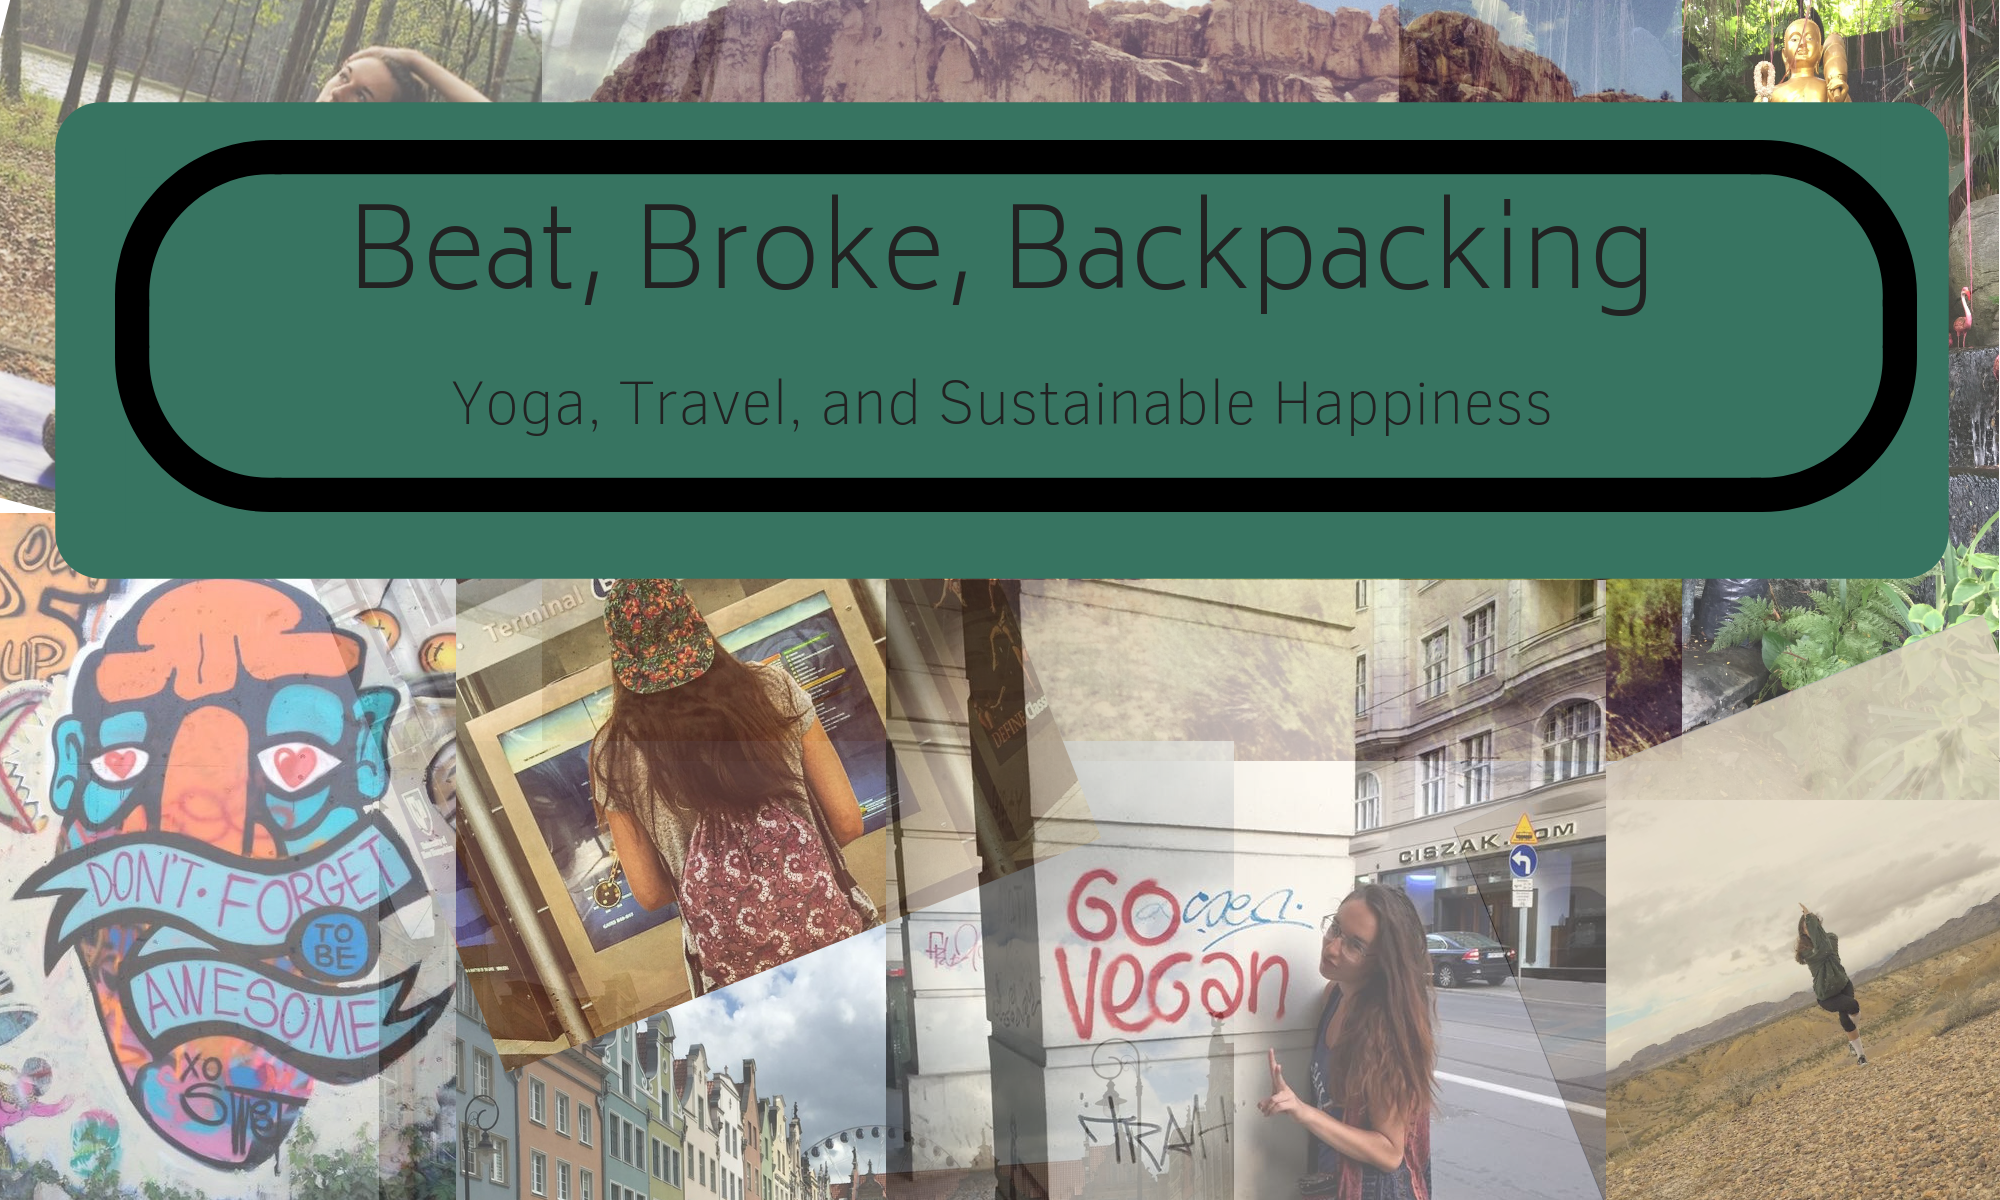 Yoga, Travel, and Sustainable Happiness. Travel Blog written by Megan Okonsky, Copywriter and Content Marketing Specialist